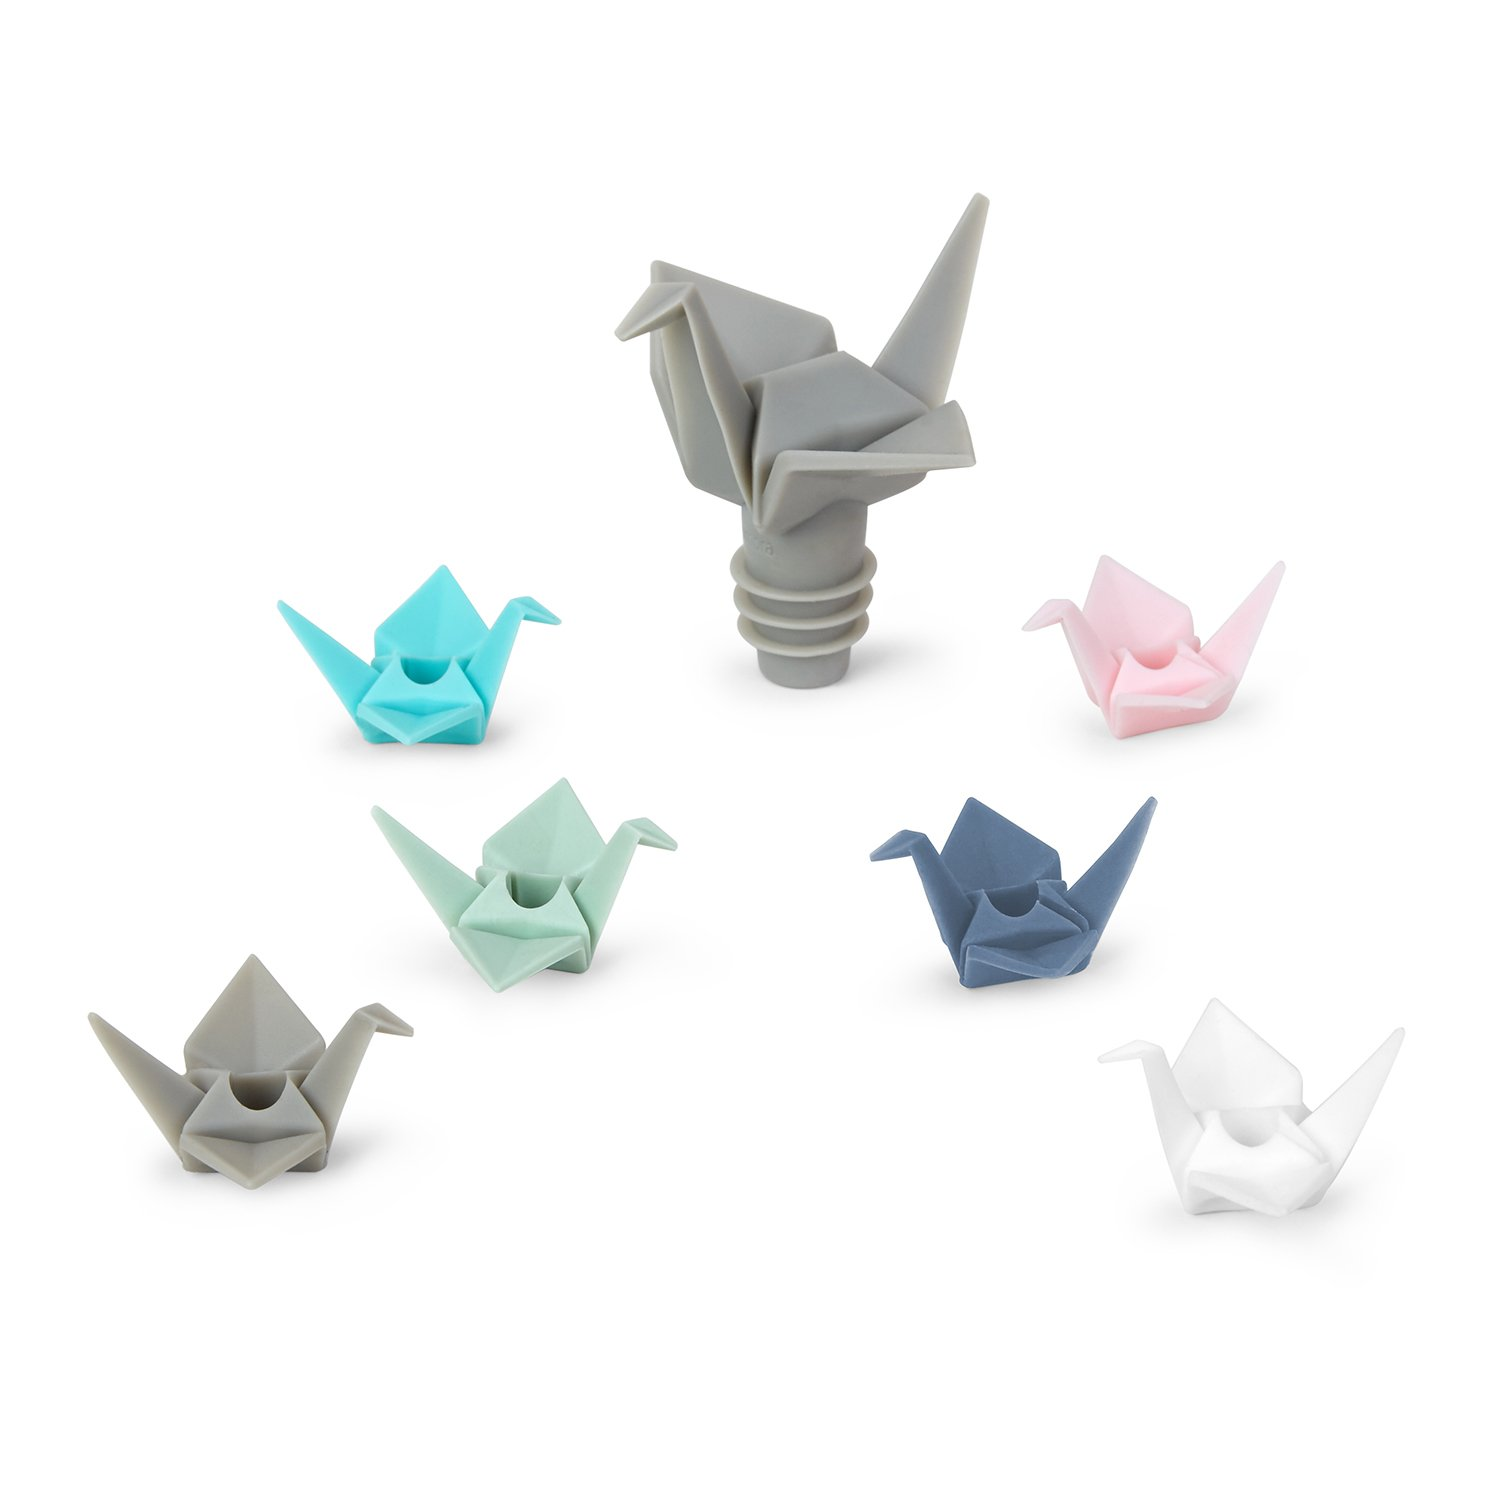 Umbra Origami Wine Bottle Stopper and Wine Charms, 7-Piece Set 1004311-022